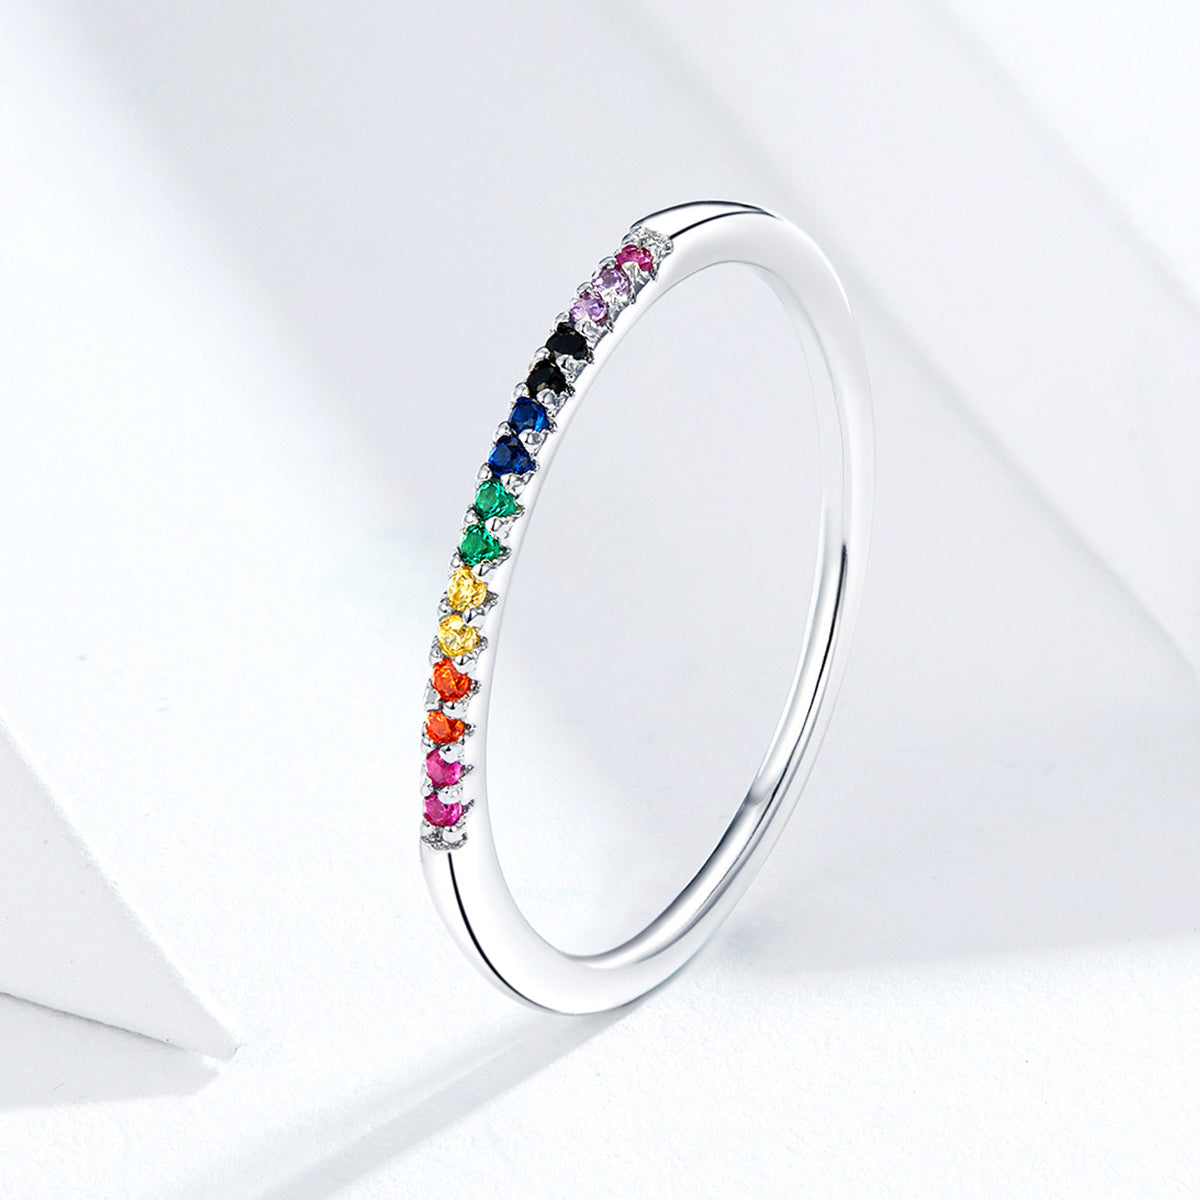 S925 sterling silver colorful zircon ring white gold plated ring